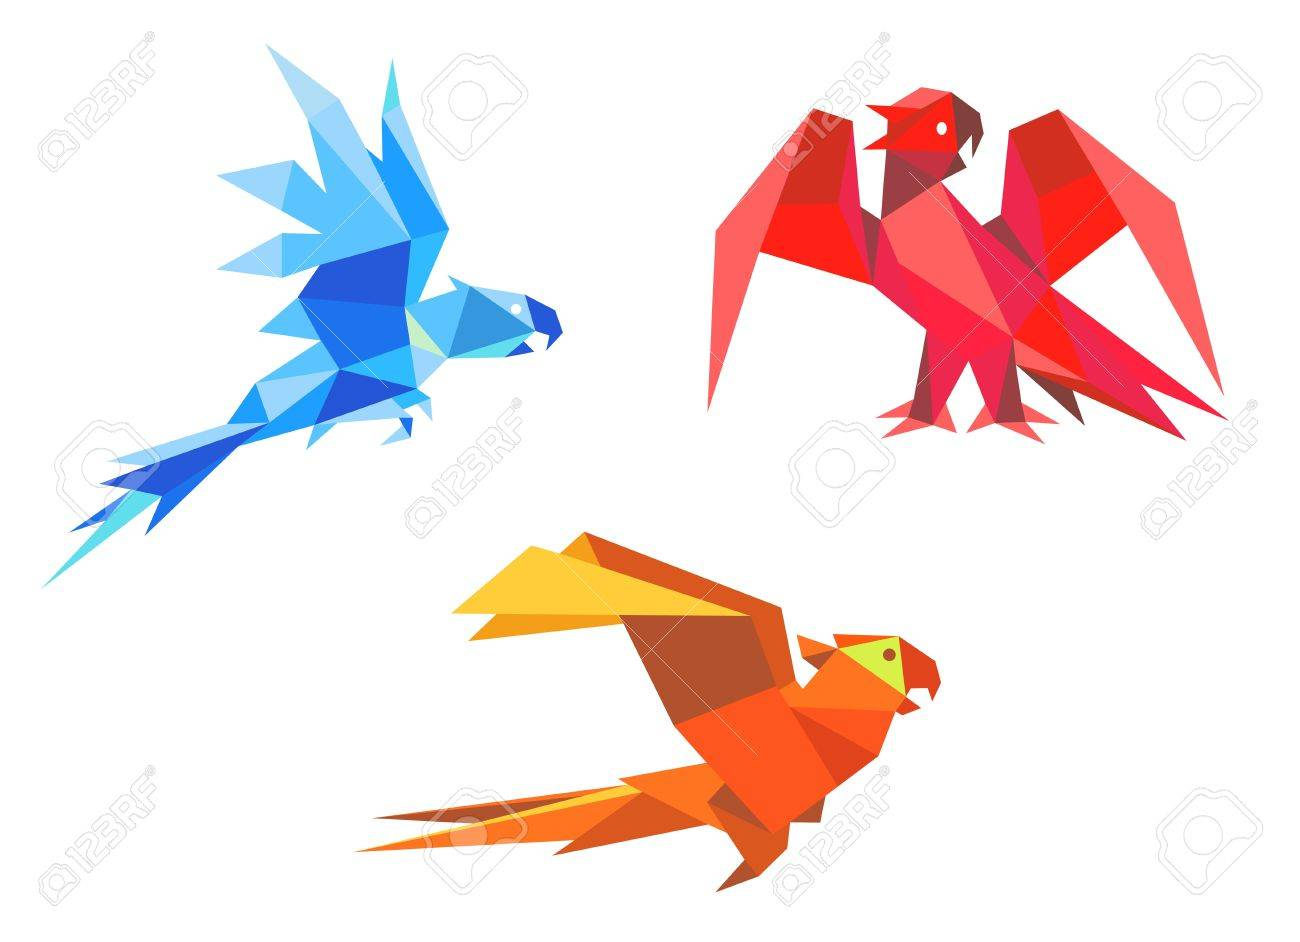 Parrots in origami paper style isolated on white background Stock Vector - 18118609